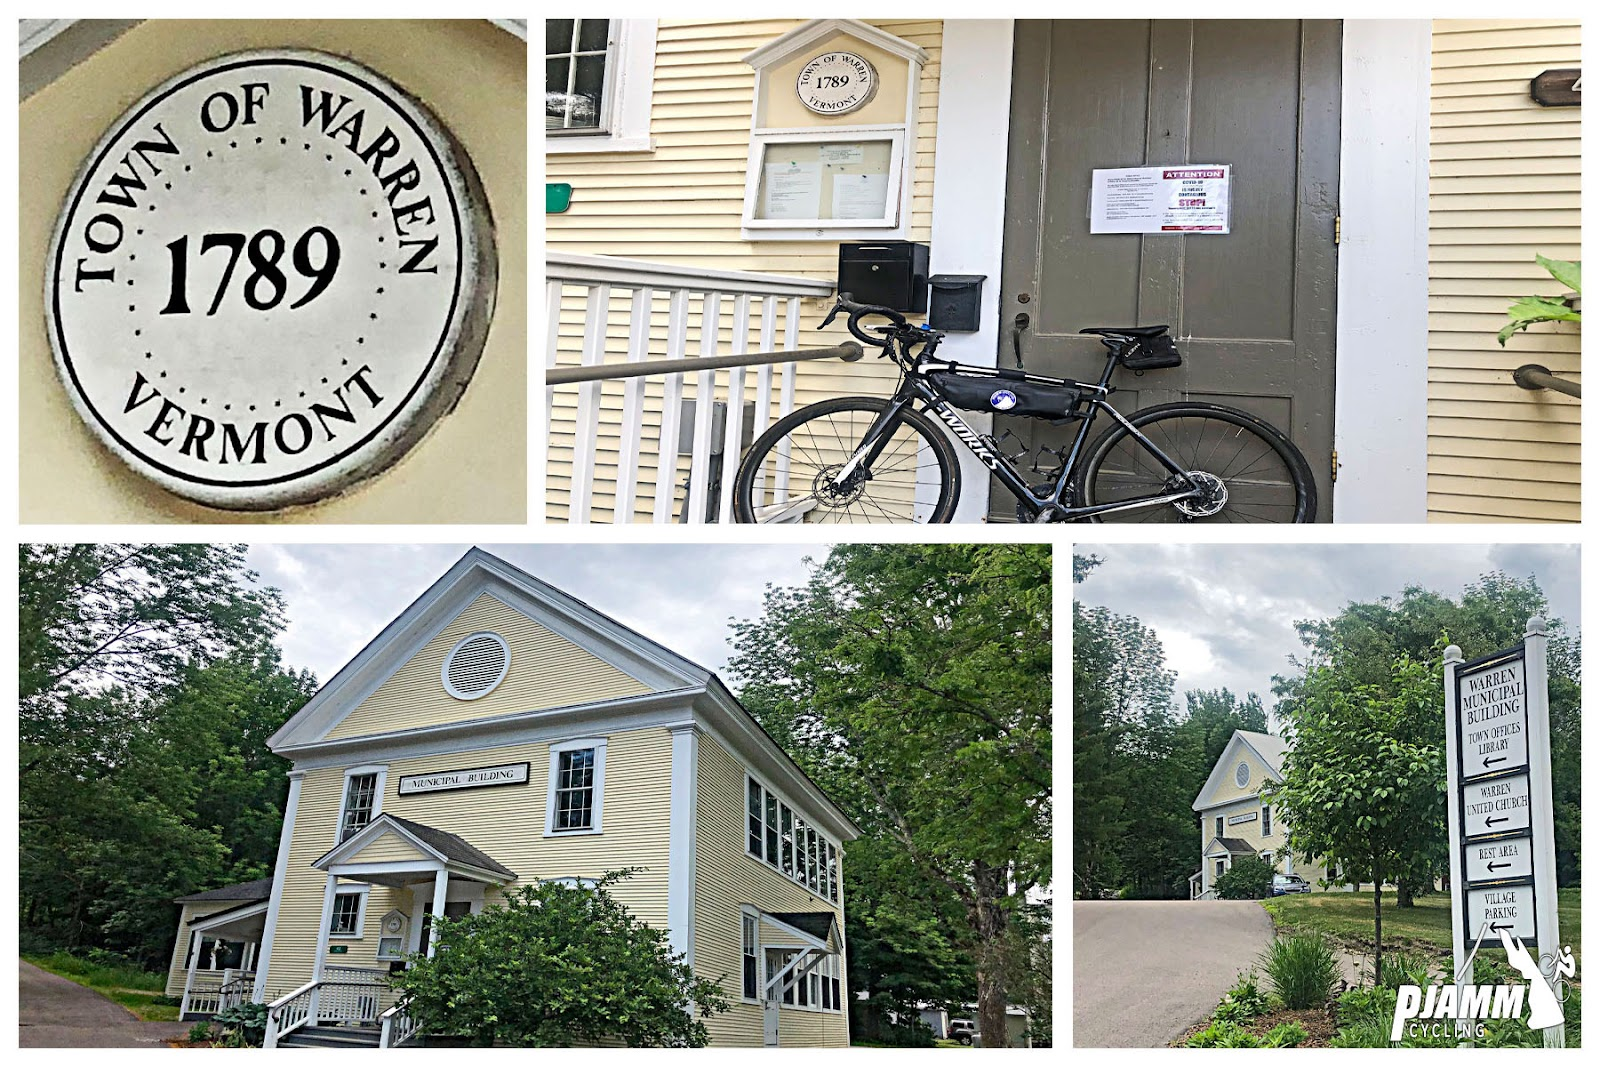 """Cycling Lincoln Gap East - light yellow colonial era two story building with """"Town of Warren, Vermont 1789"""" circular placard, bike leaning against front porch of building"""